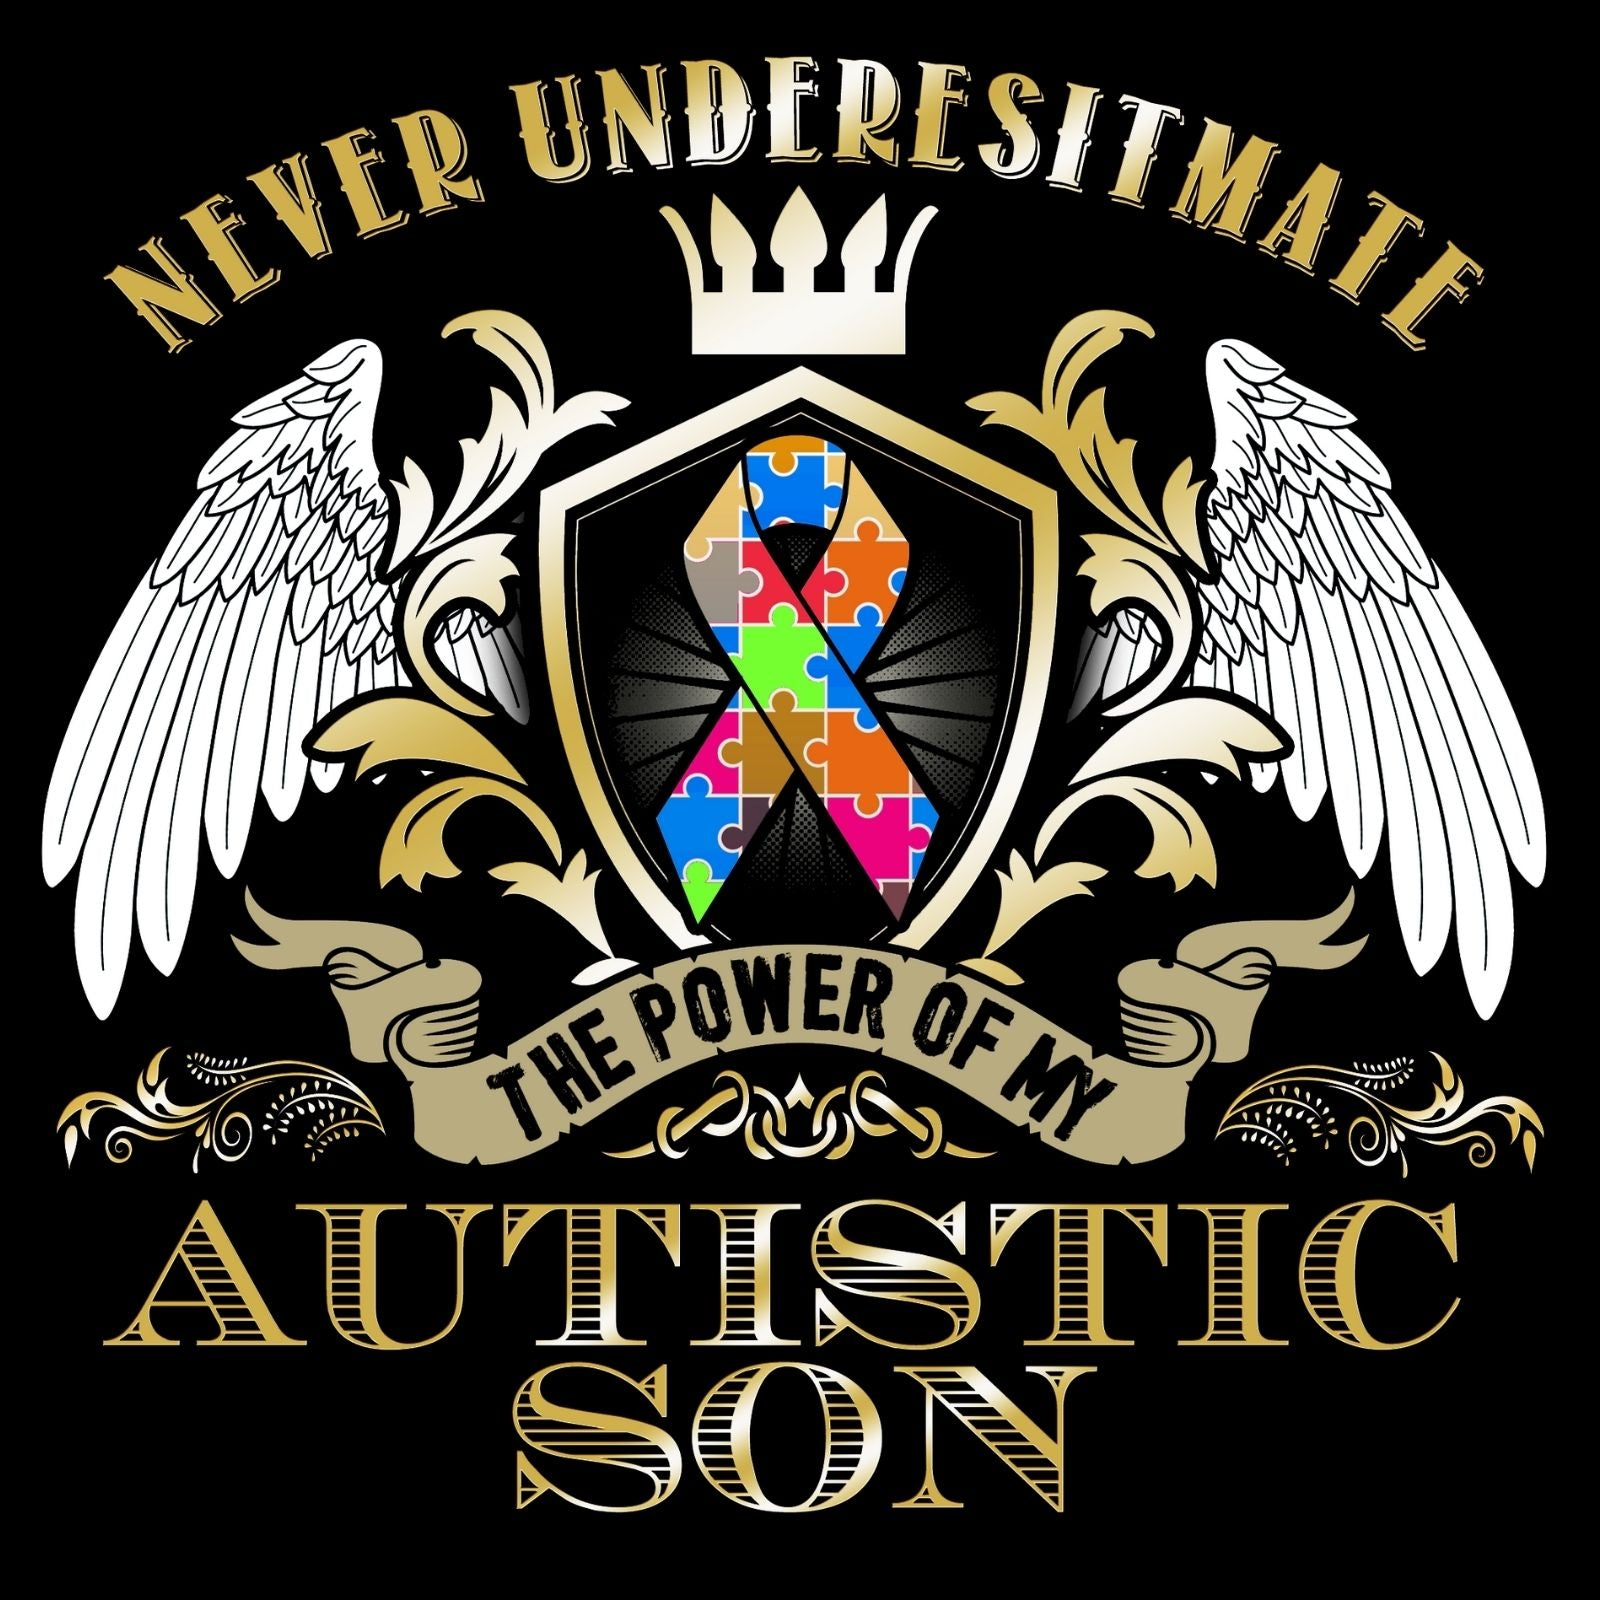 Never Underestimate The Power Of My Autistic Son - Bastard Graphics